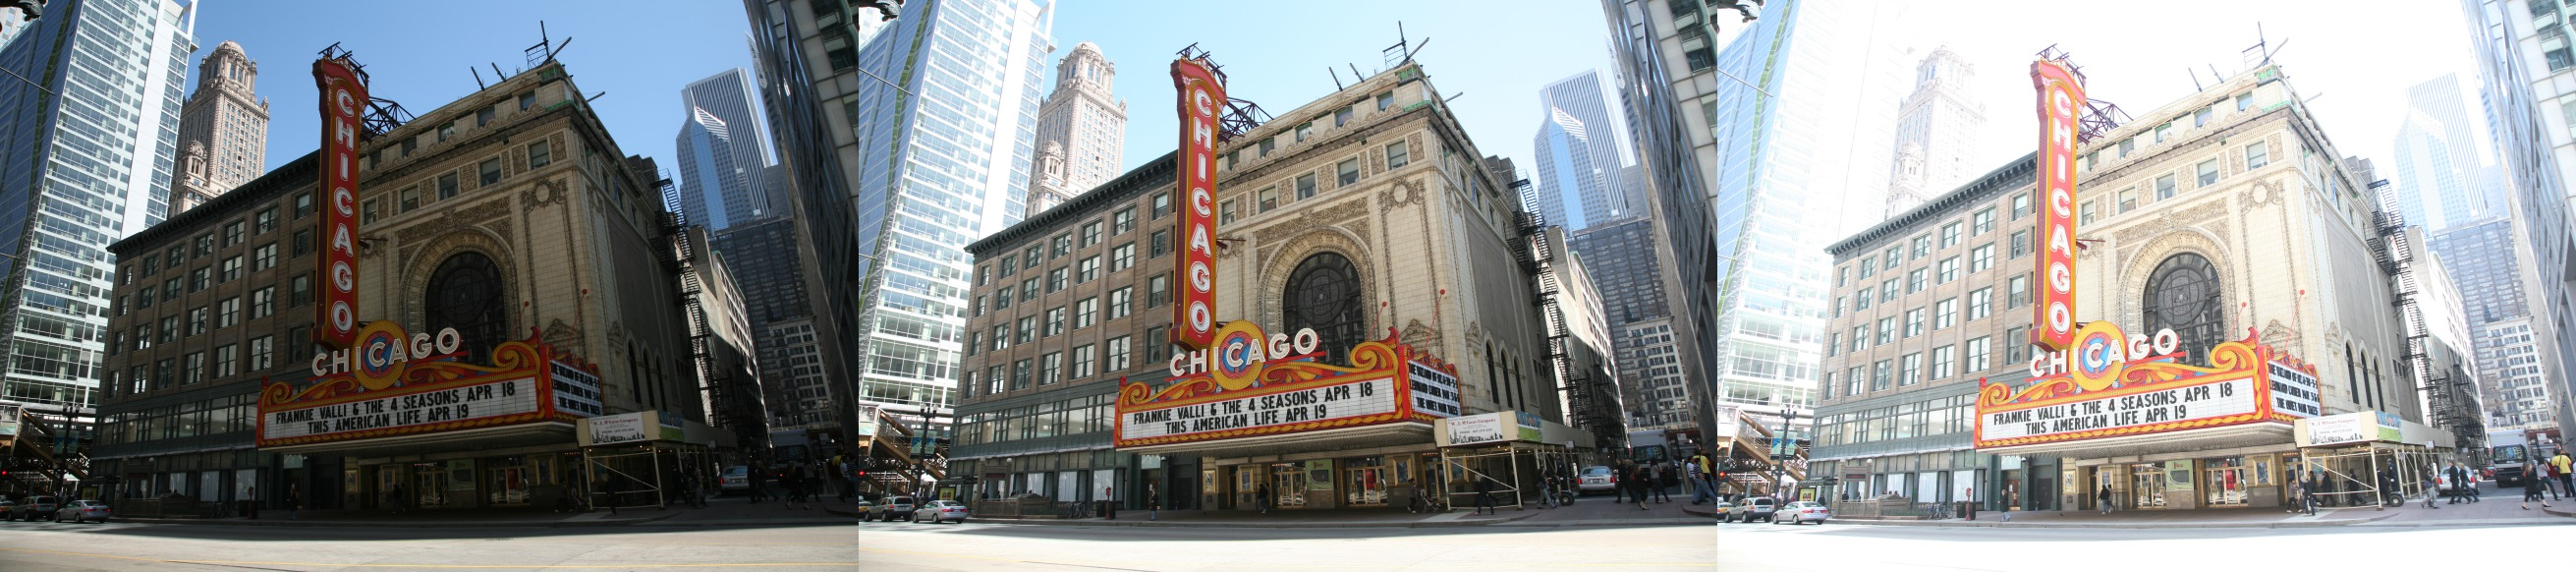 chicago-theater-expositure-light-photography